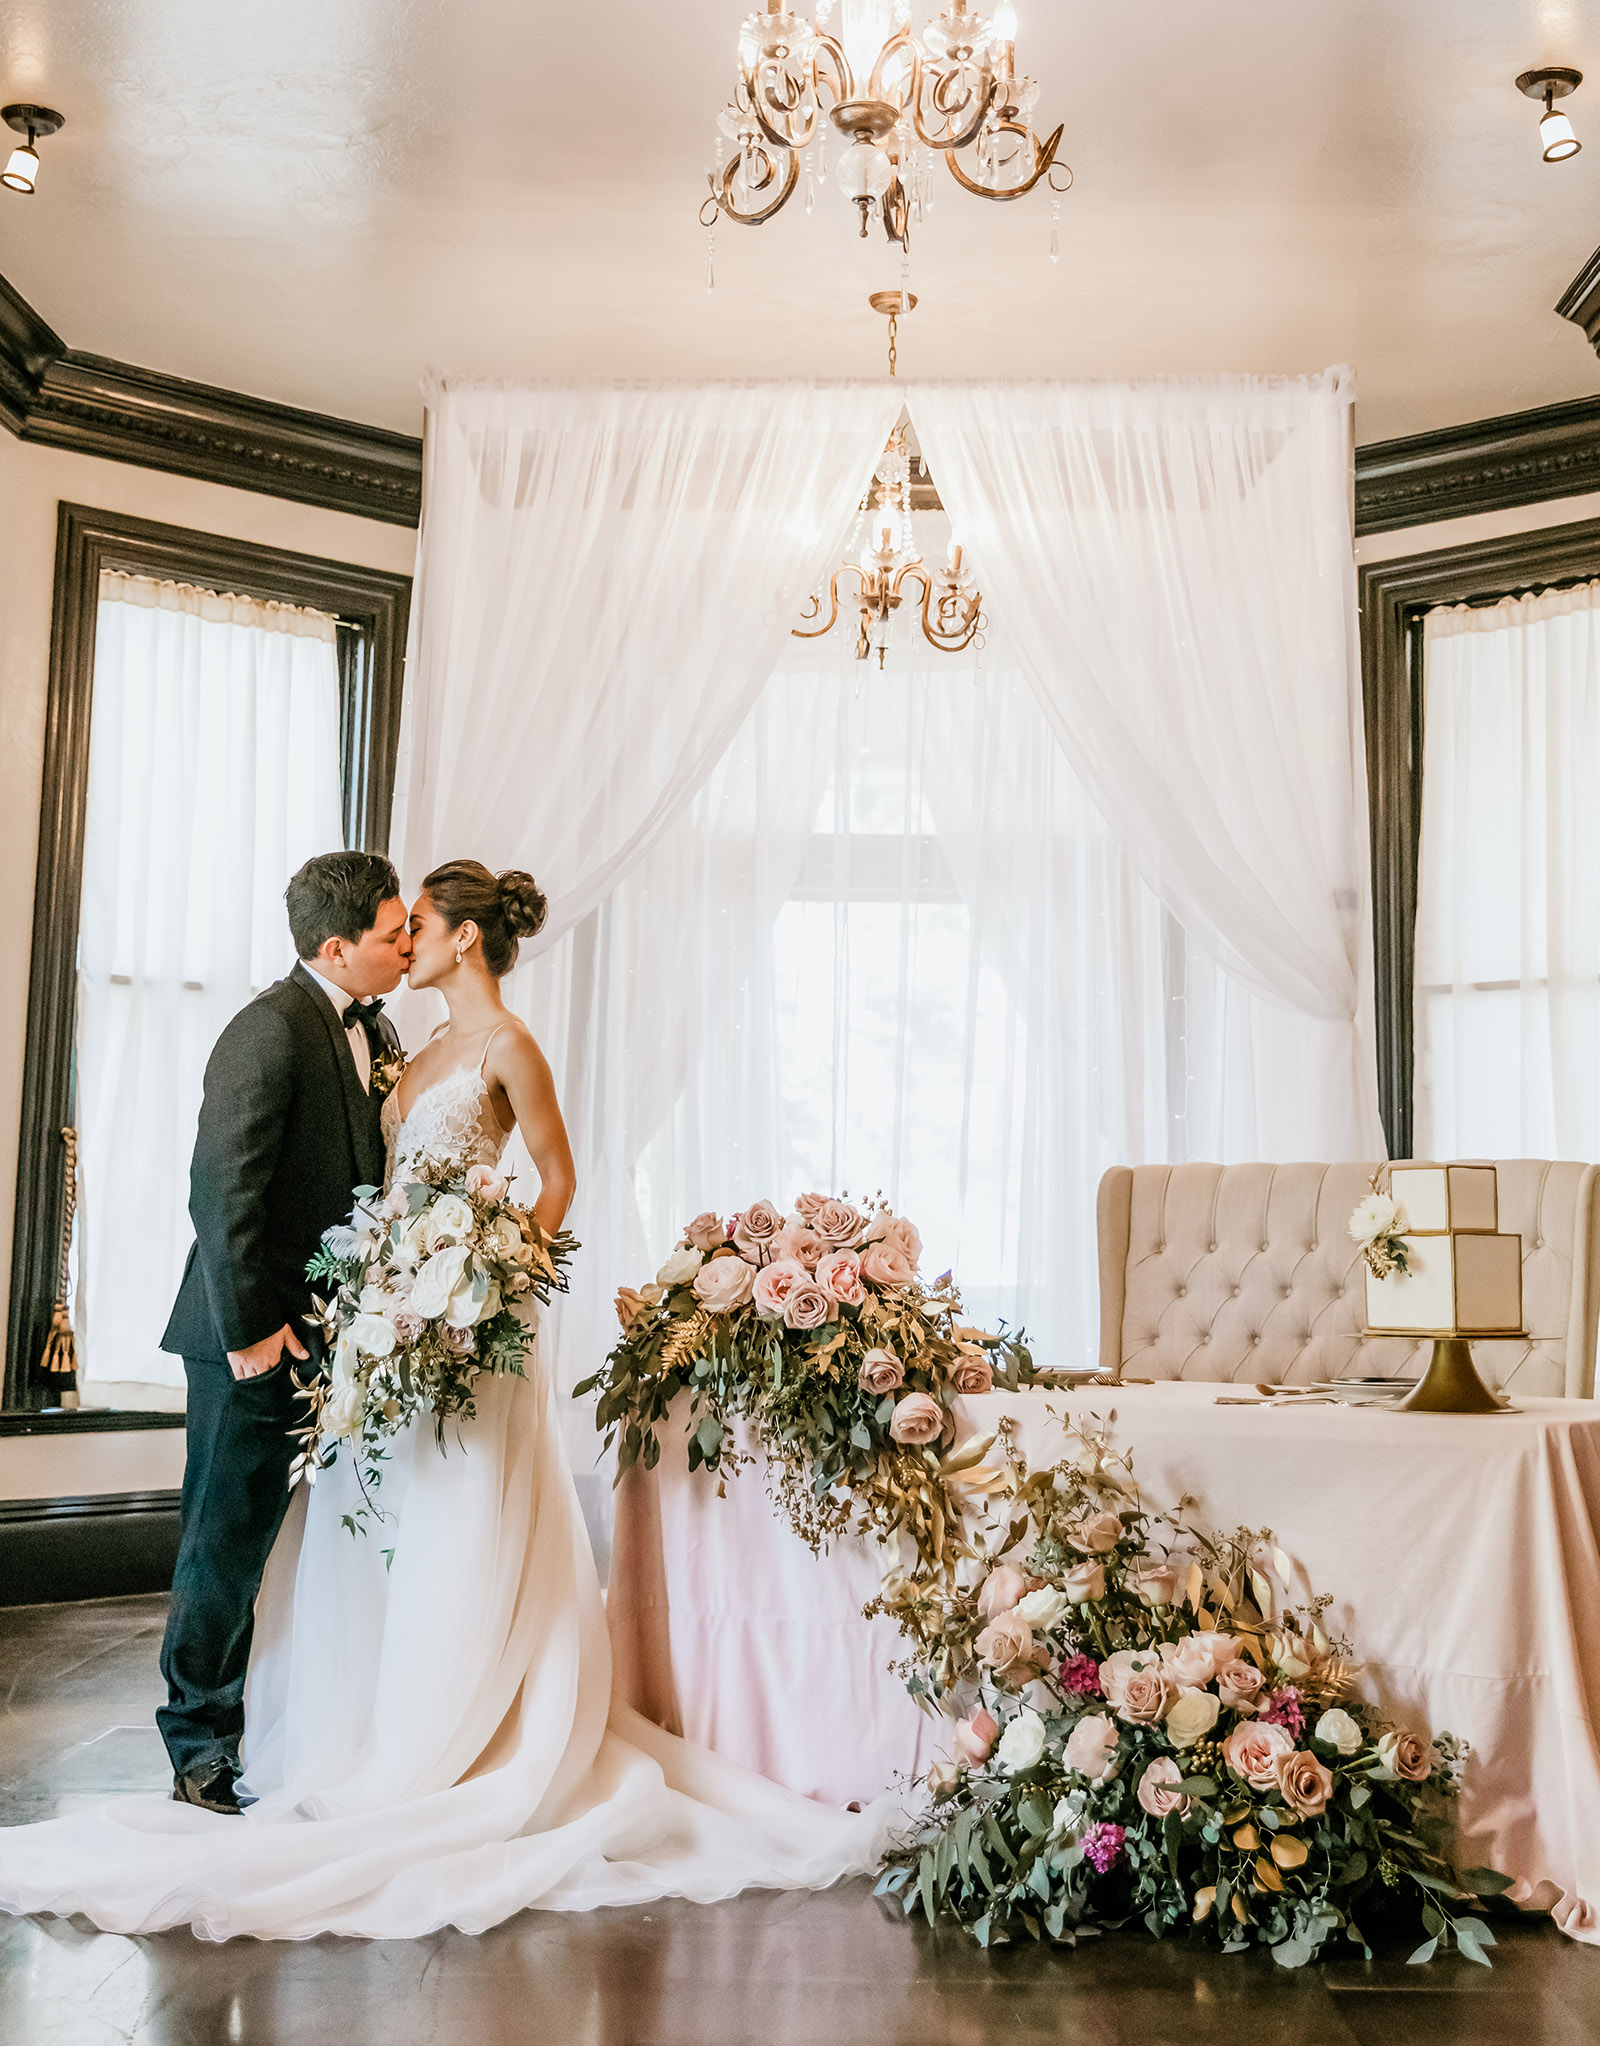 Romantic reception kiss - Sterling Hotel - Sacramento, California - Sacramento County - Wedgewood Weddings